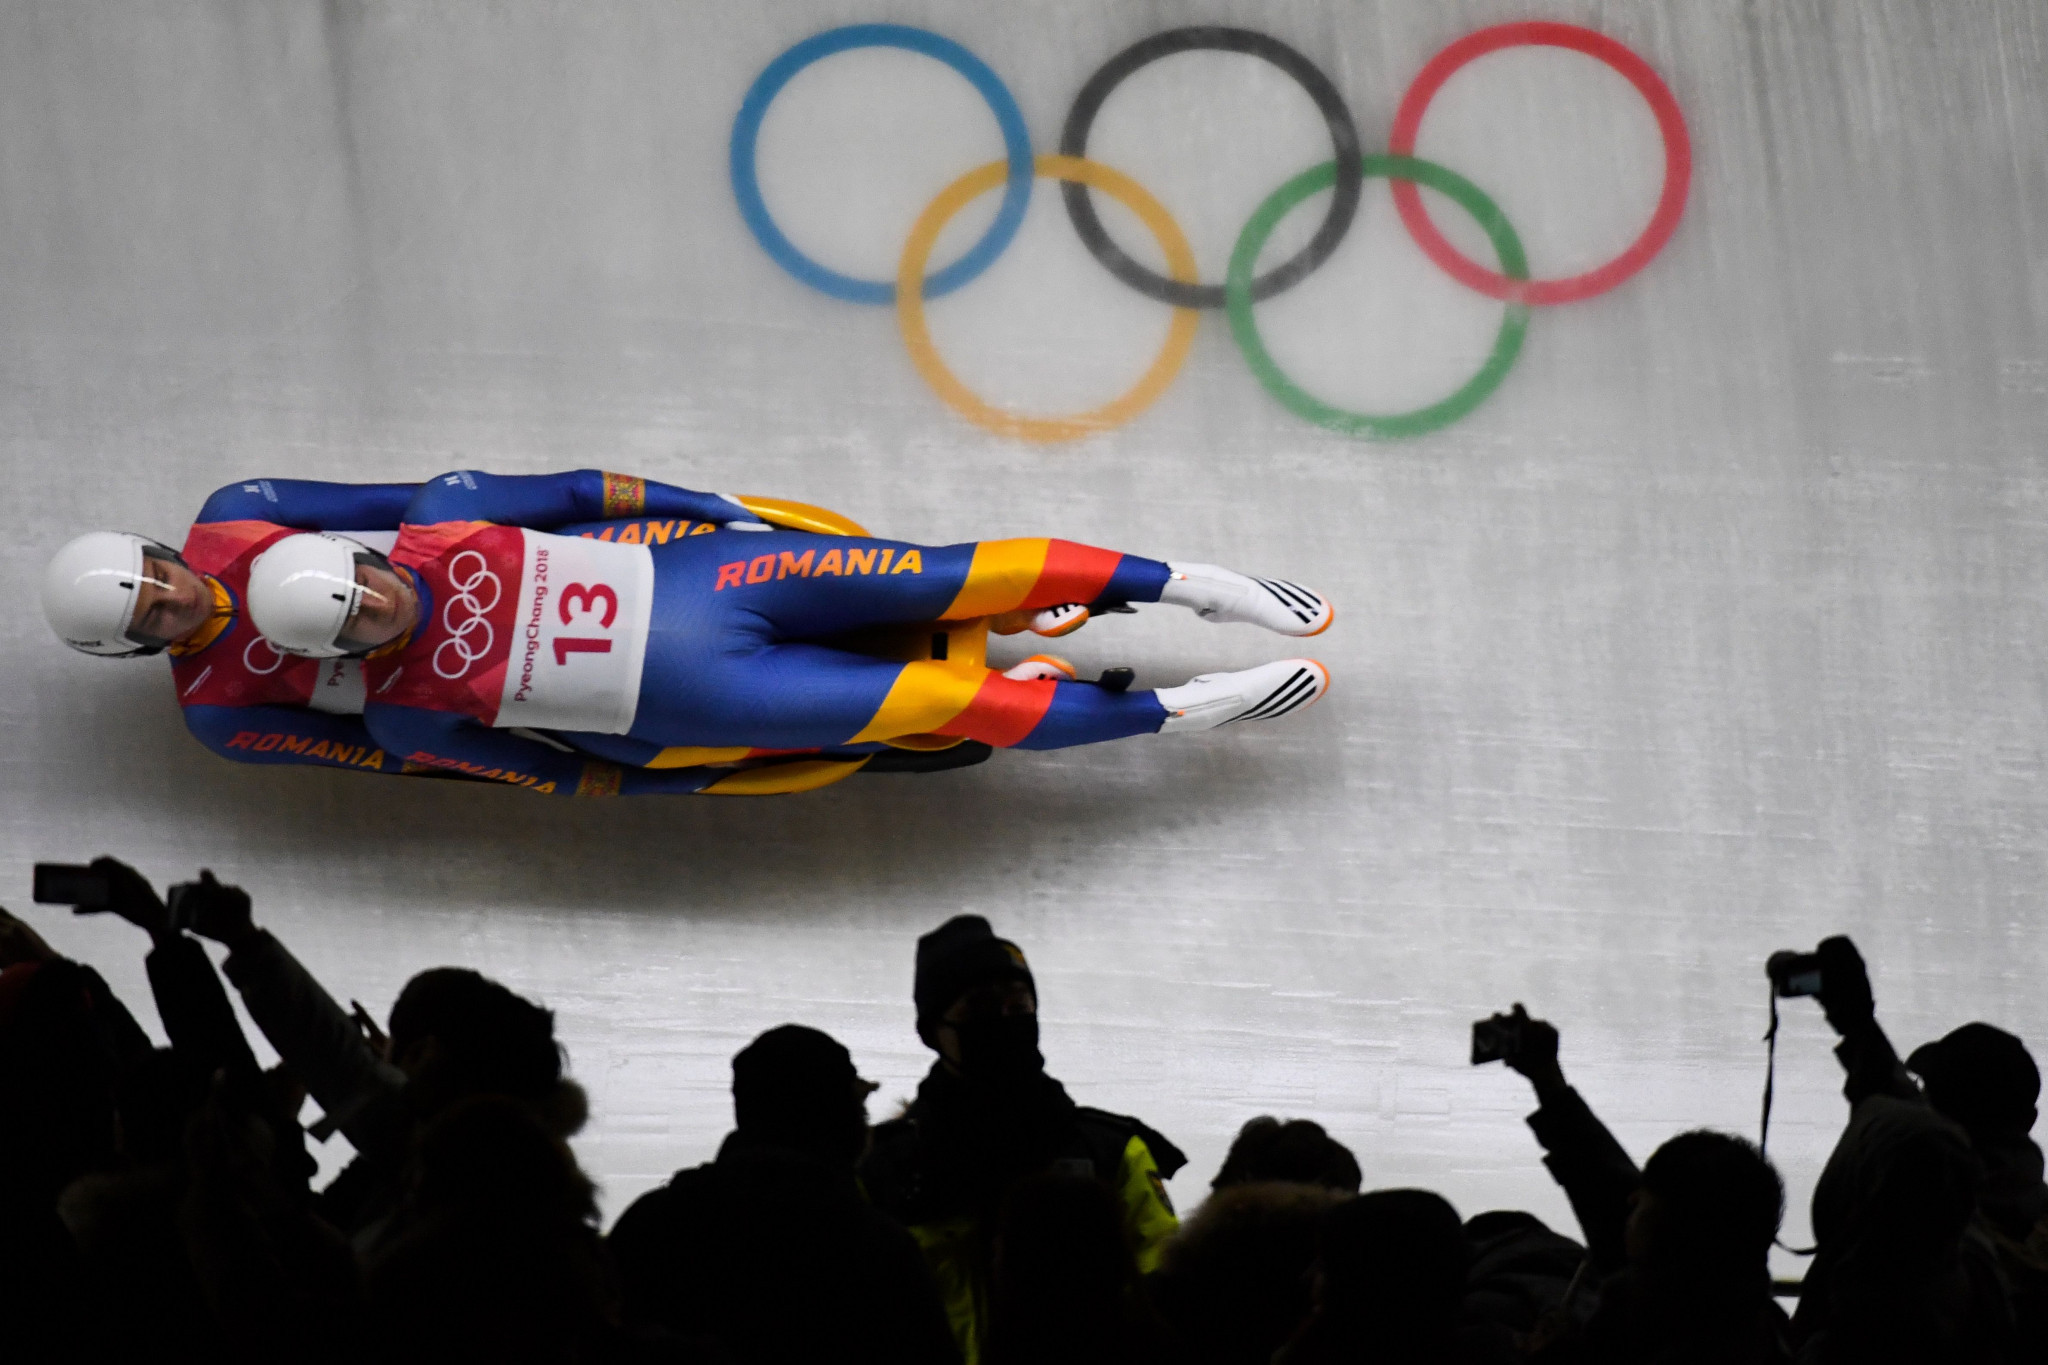 The development role supported emerging luge nations ©Getty Images